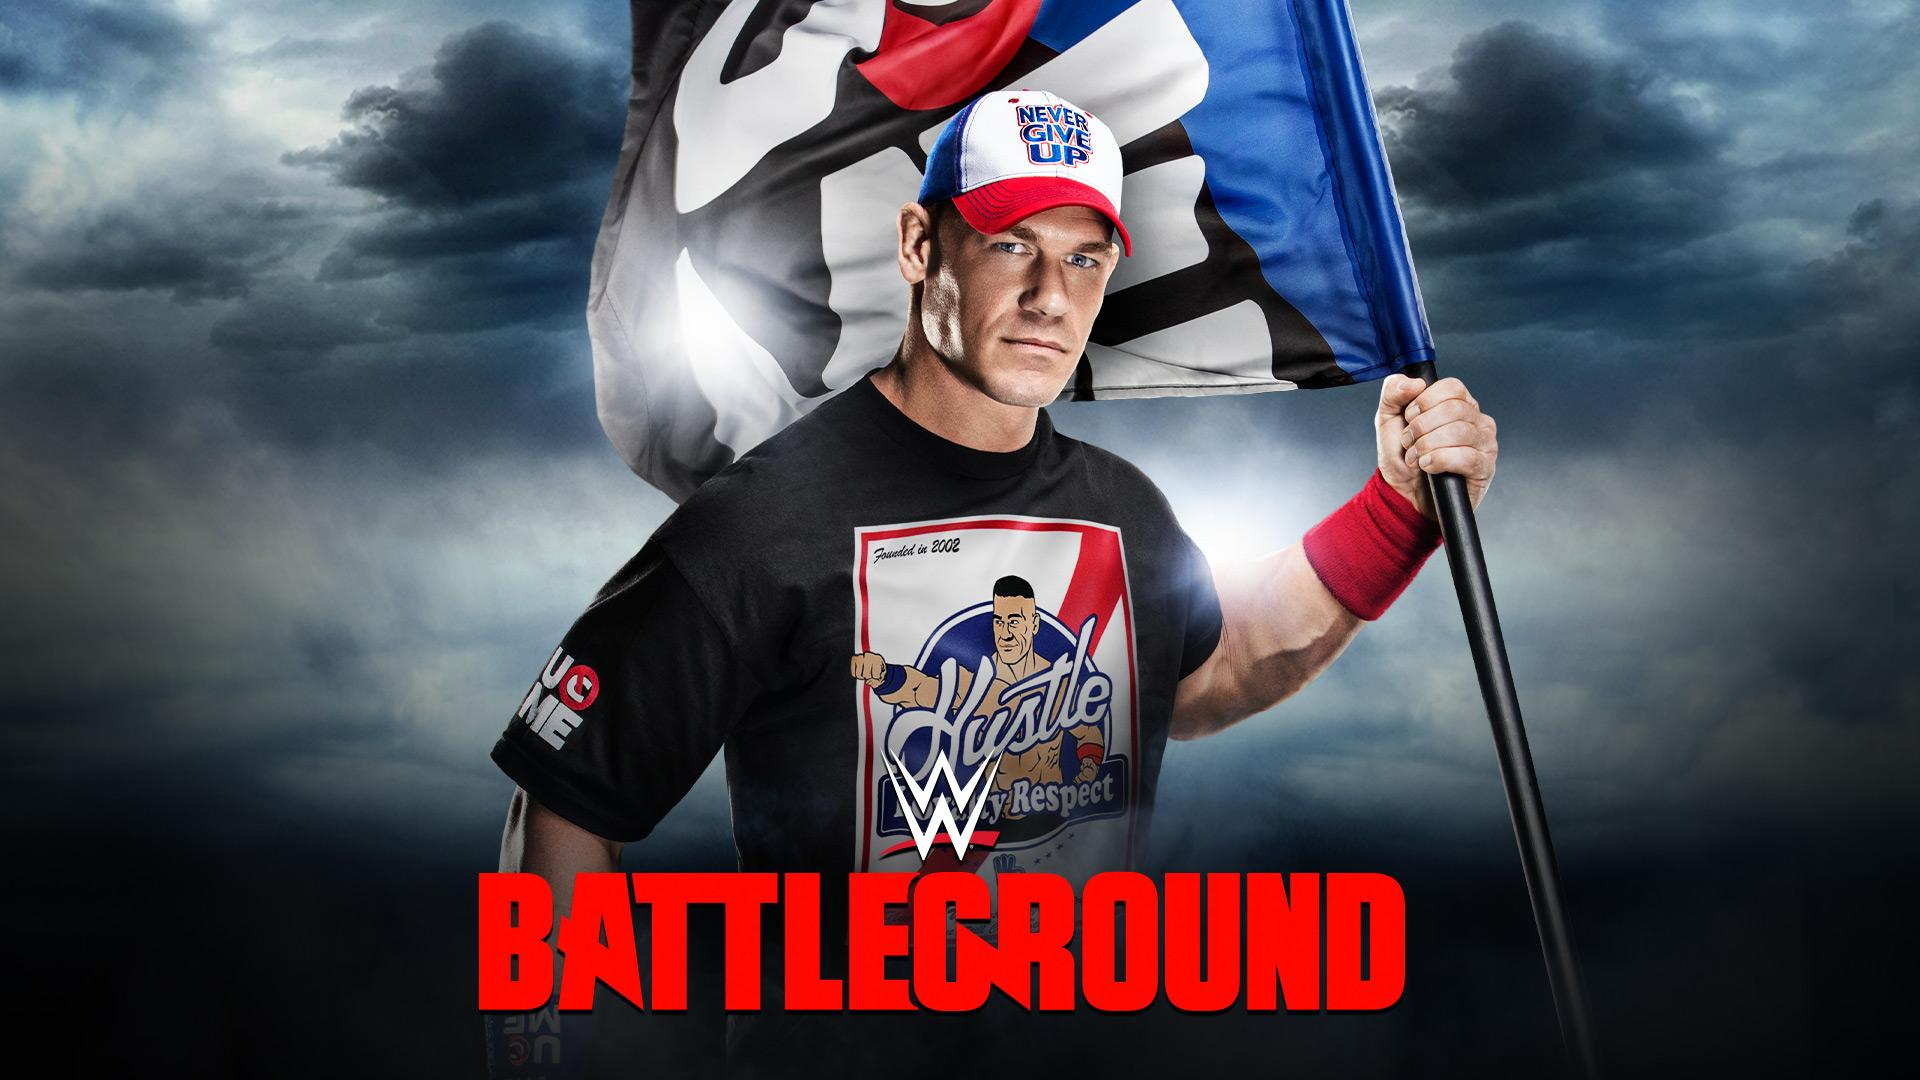 johncenabattleground2016